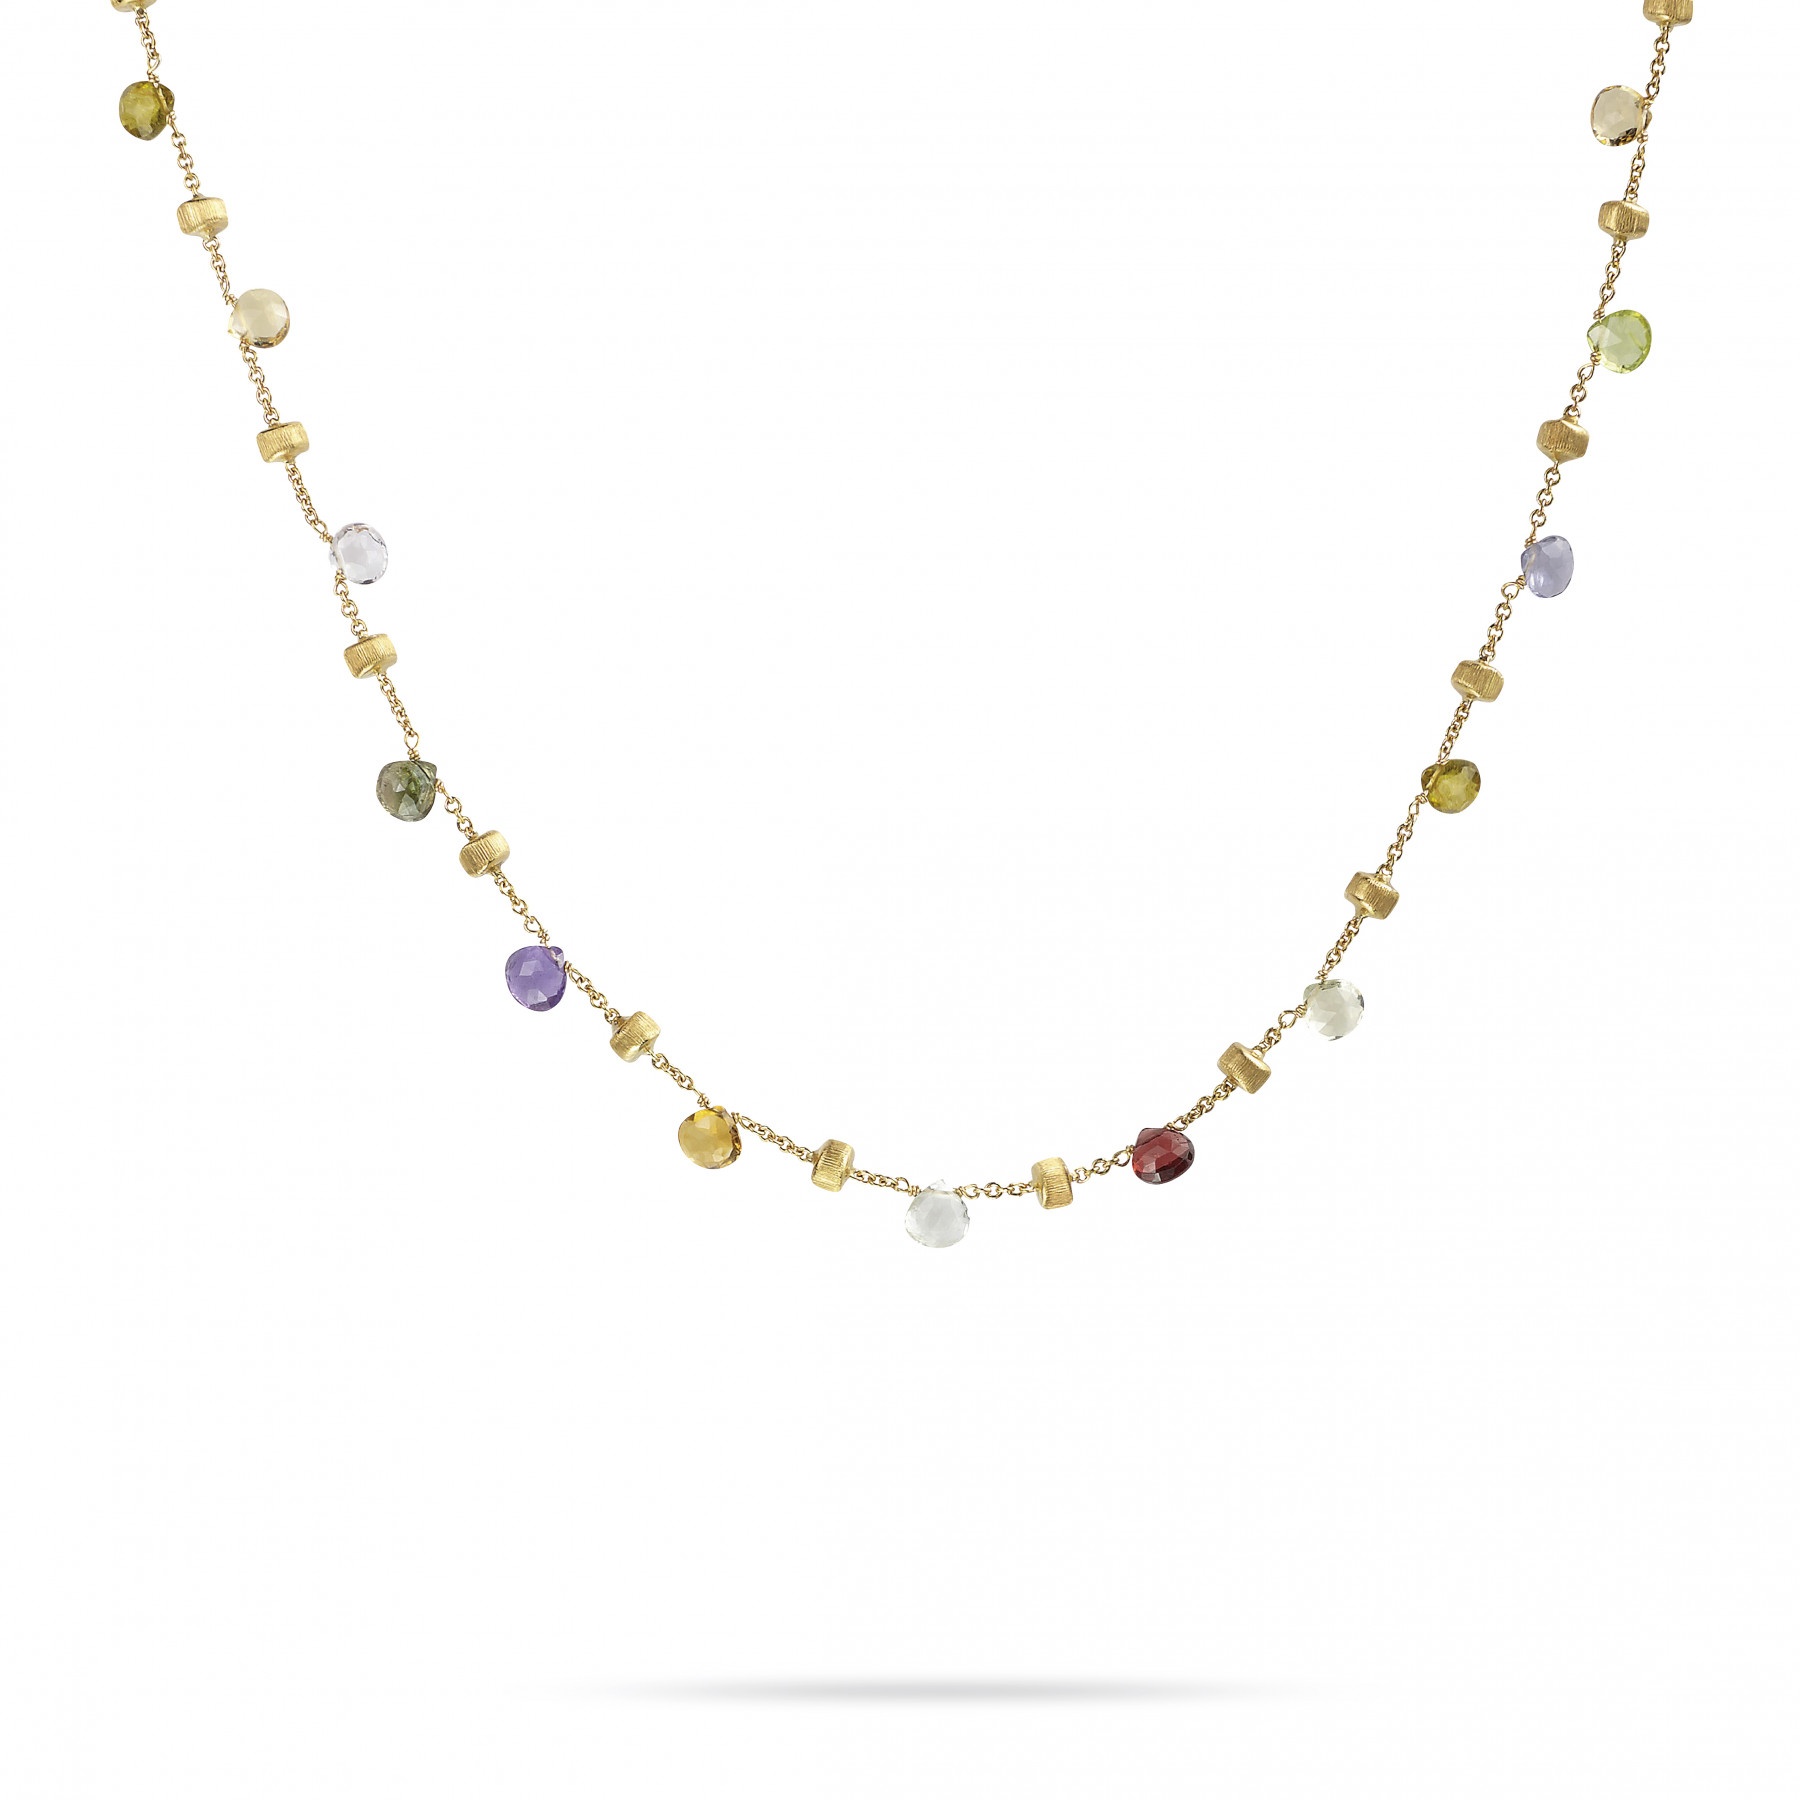 Marco Bicego Paradise 18kt Gold Necklace with Multi-Colored Gemstones 18""